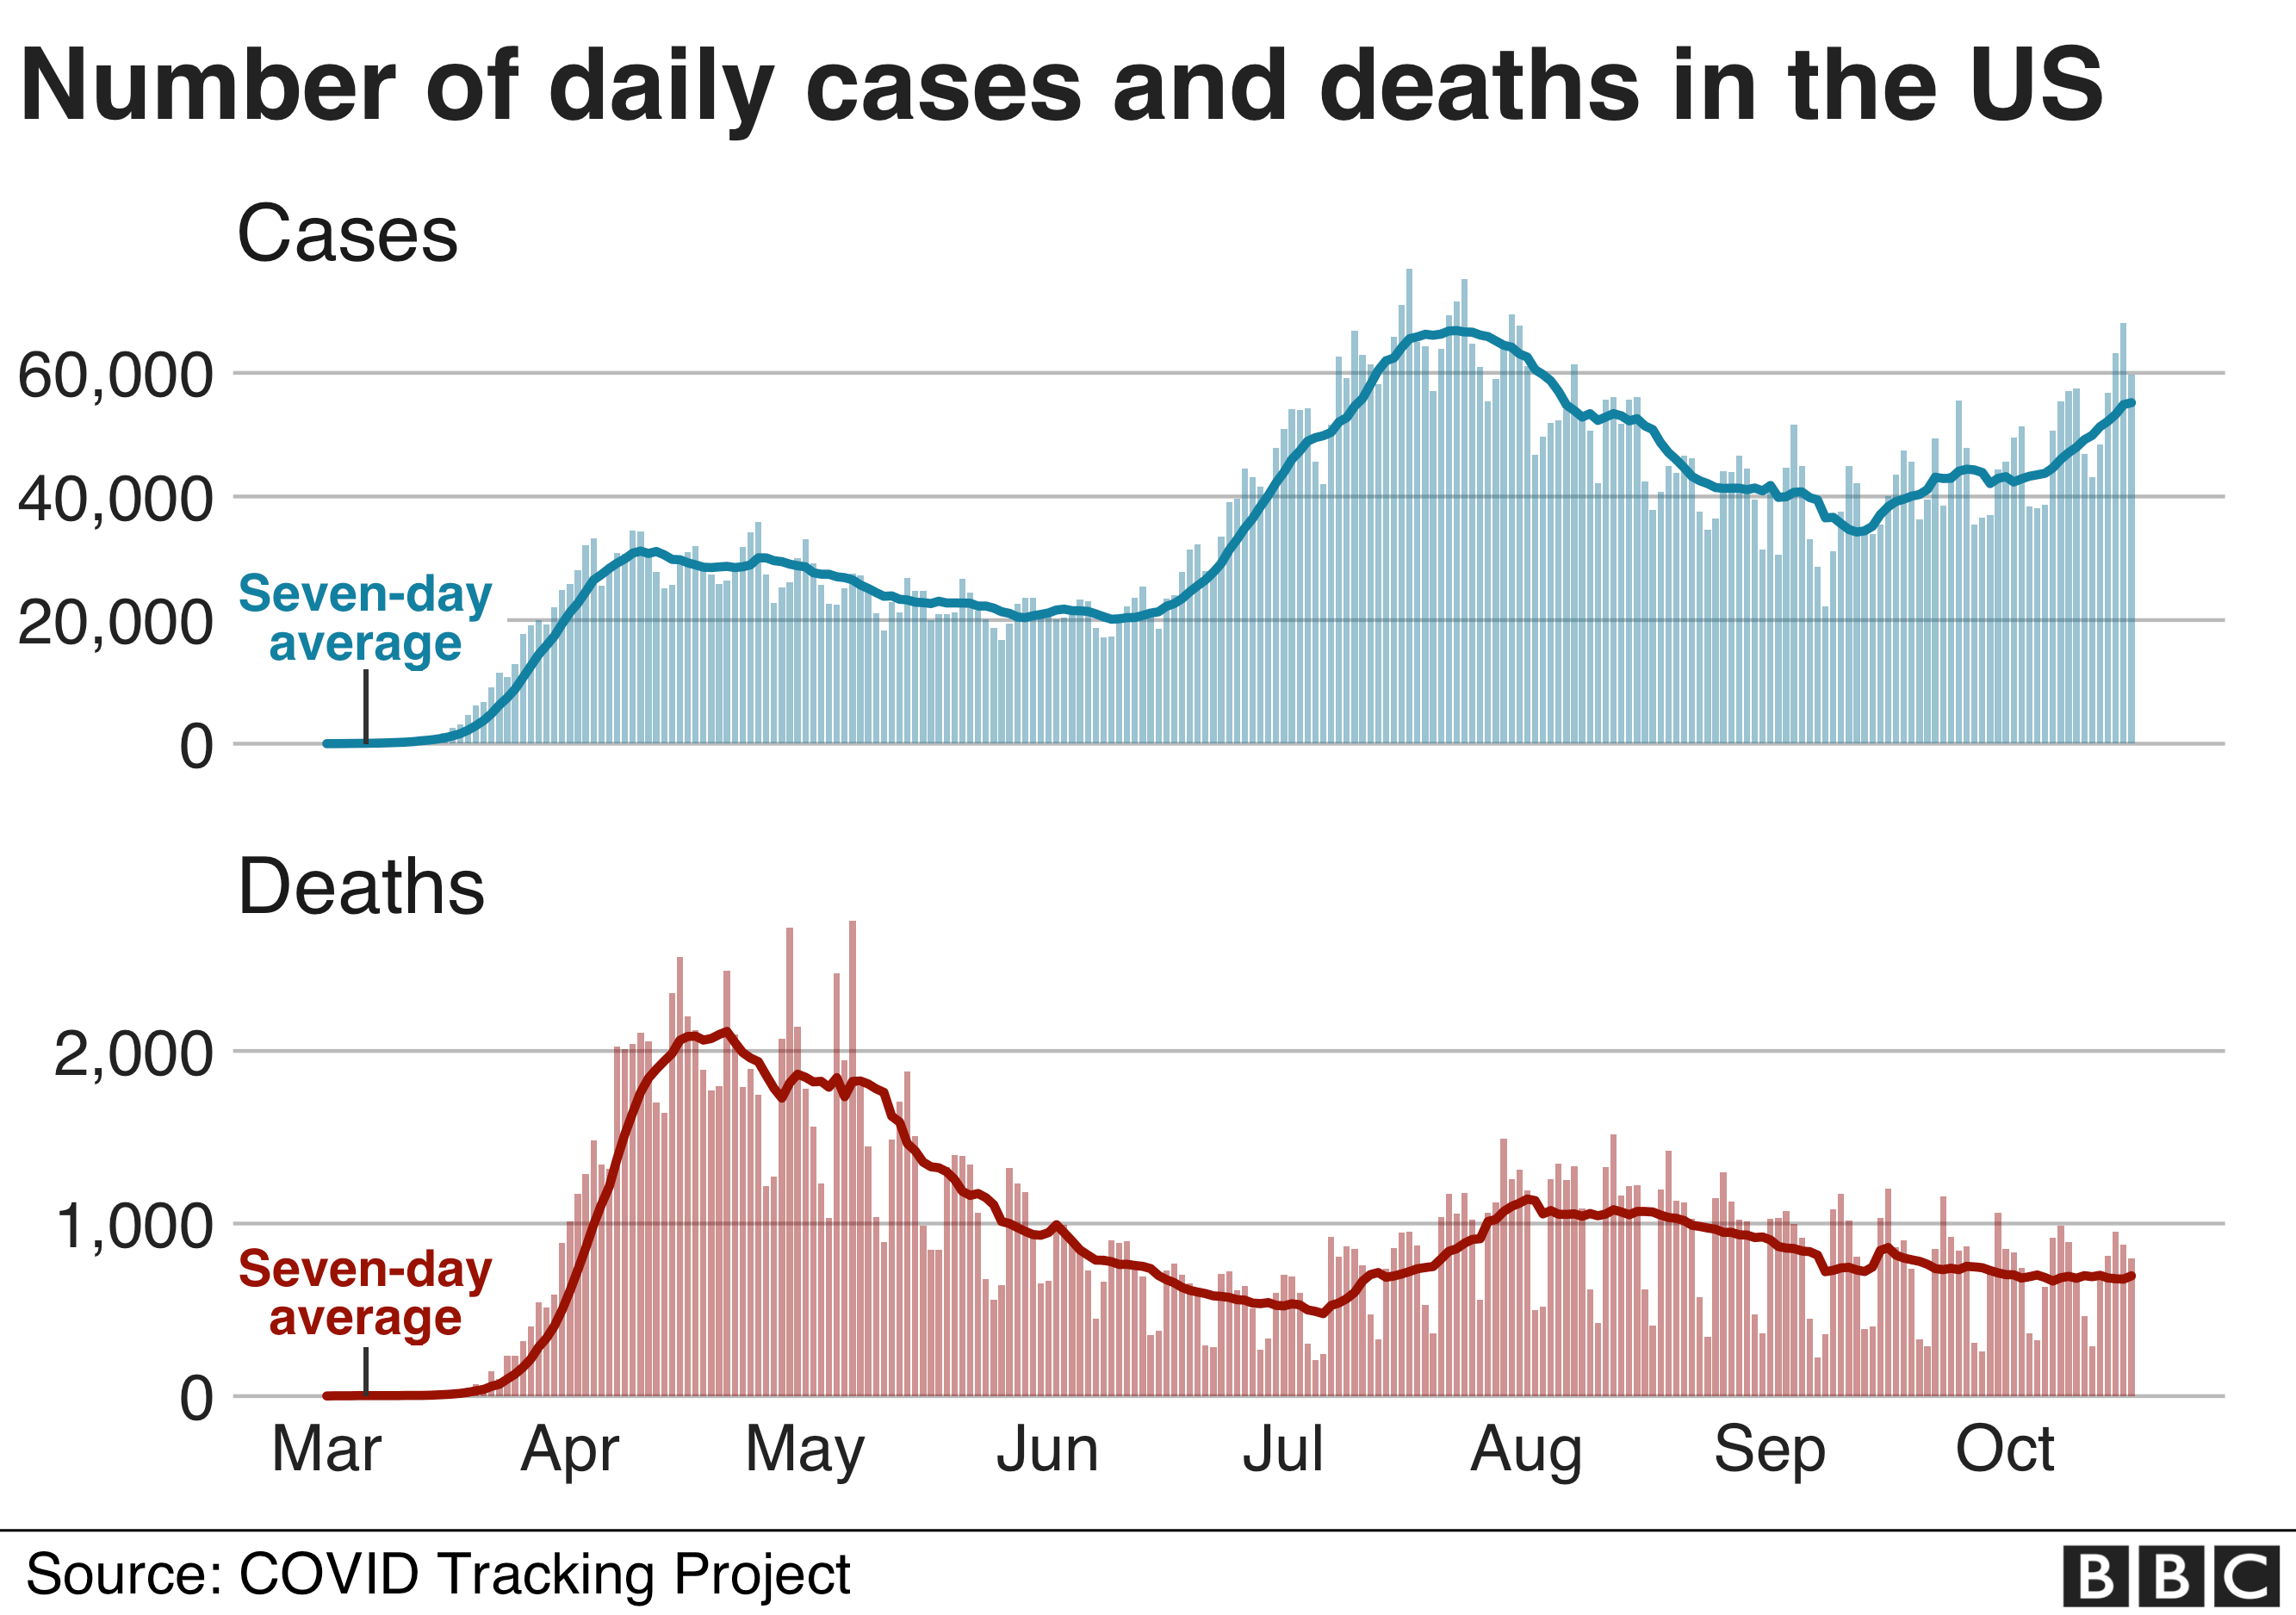 Chart shows daily cases and deaths in the US